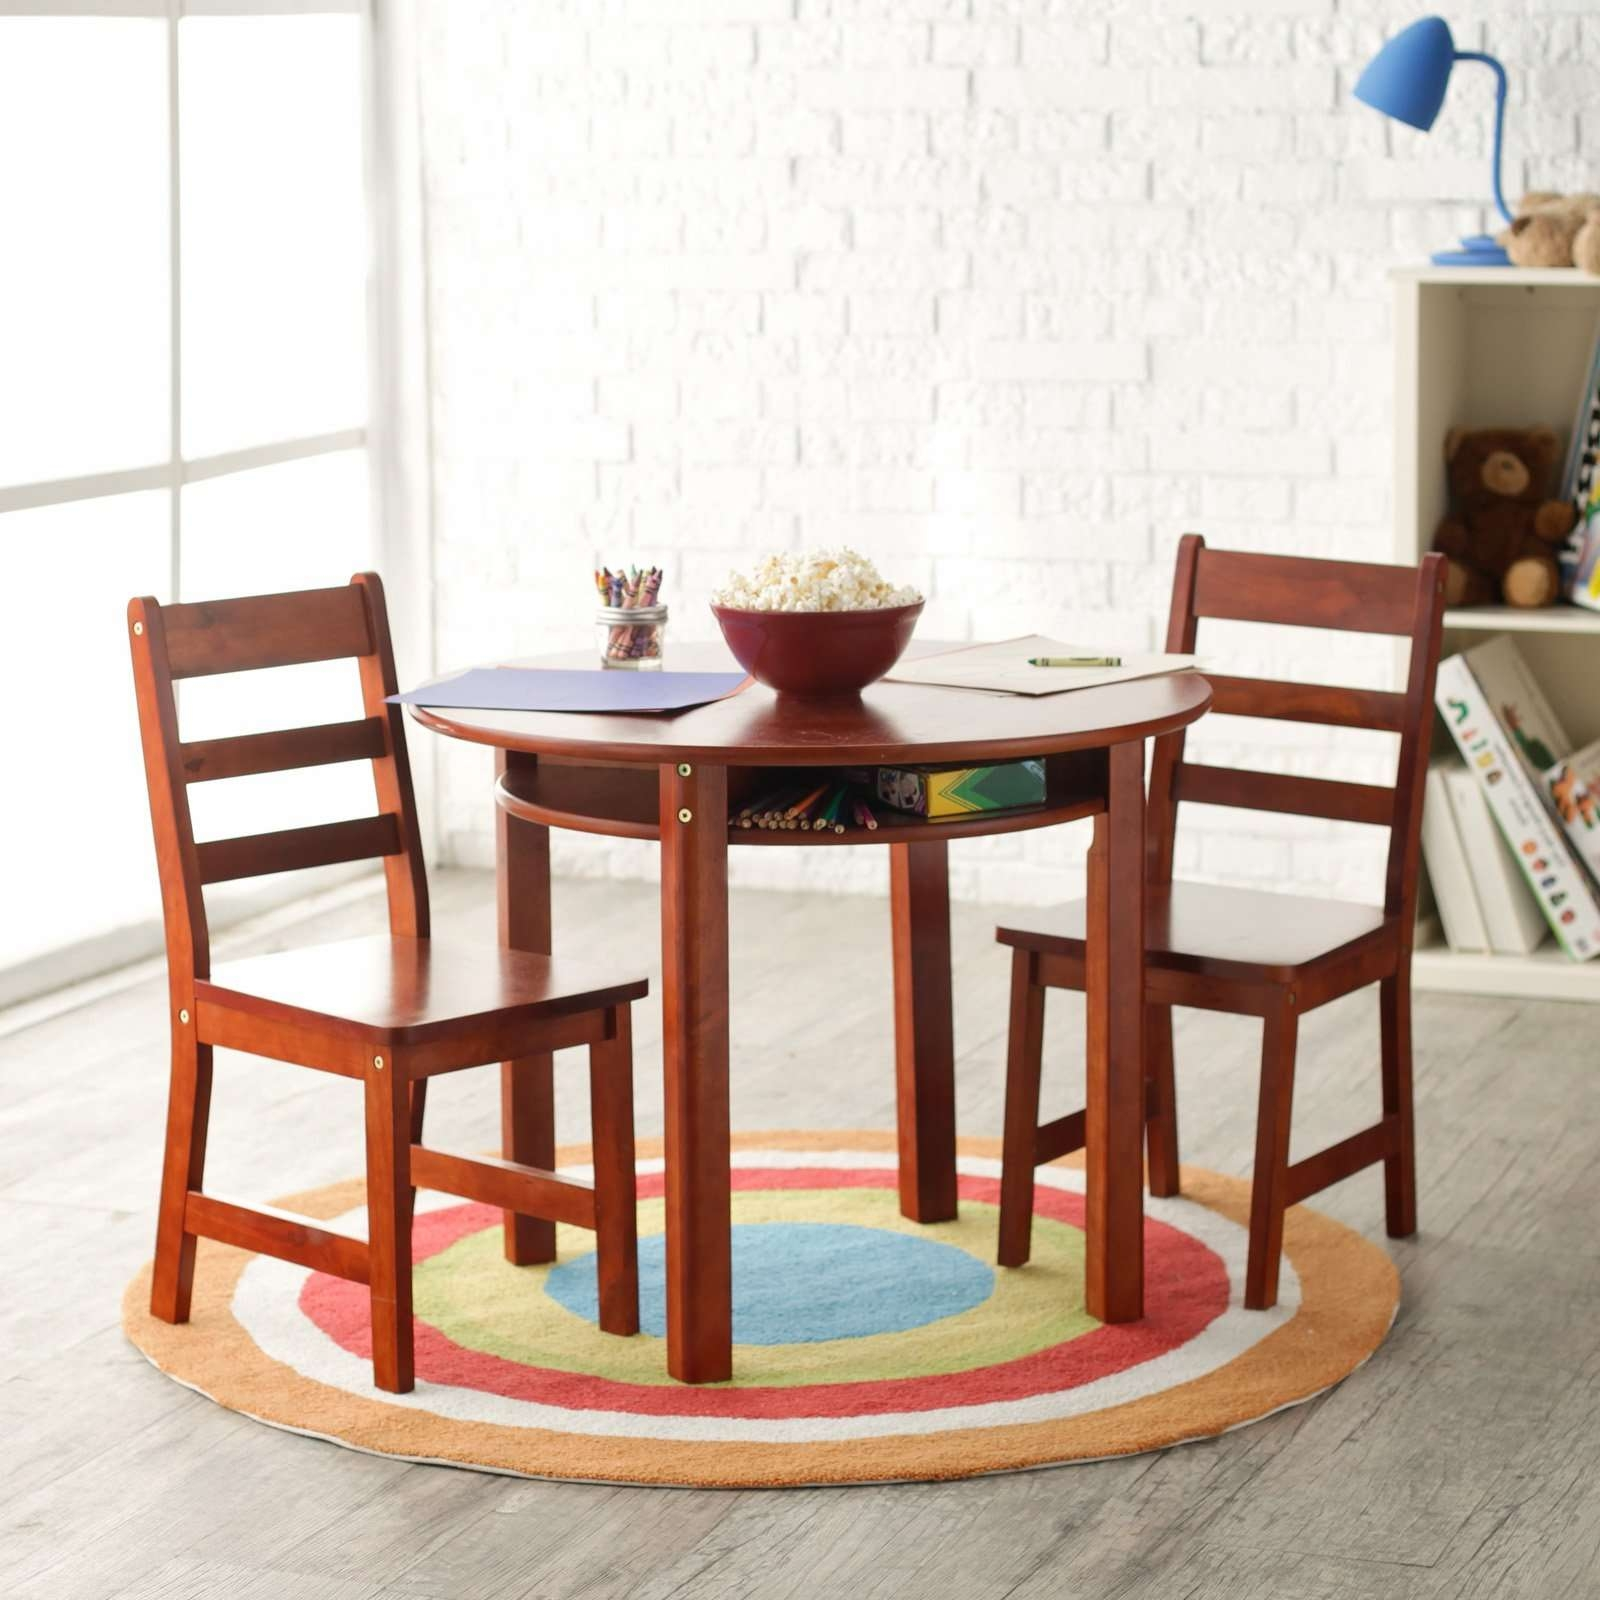 Lipper Childrens Round Table And Chair Set (View 6 of 20)